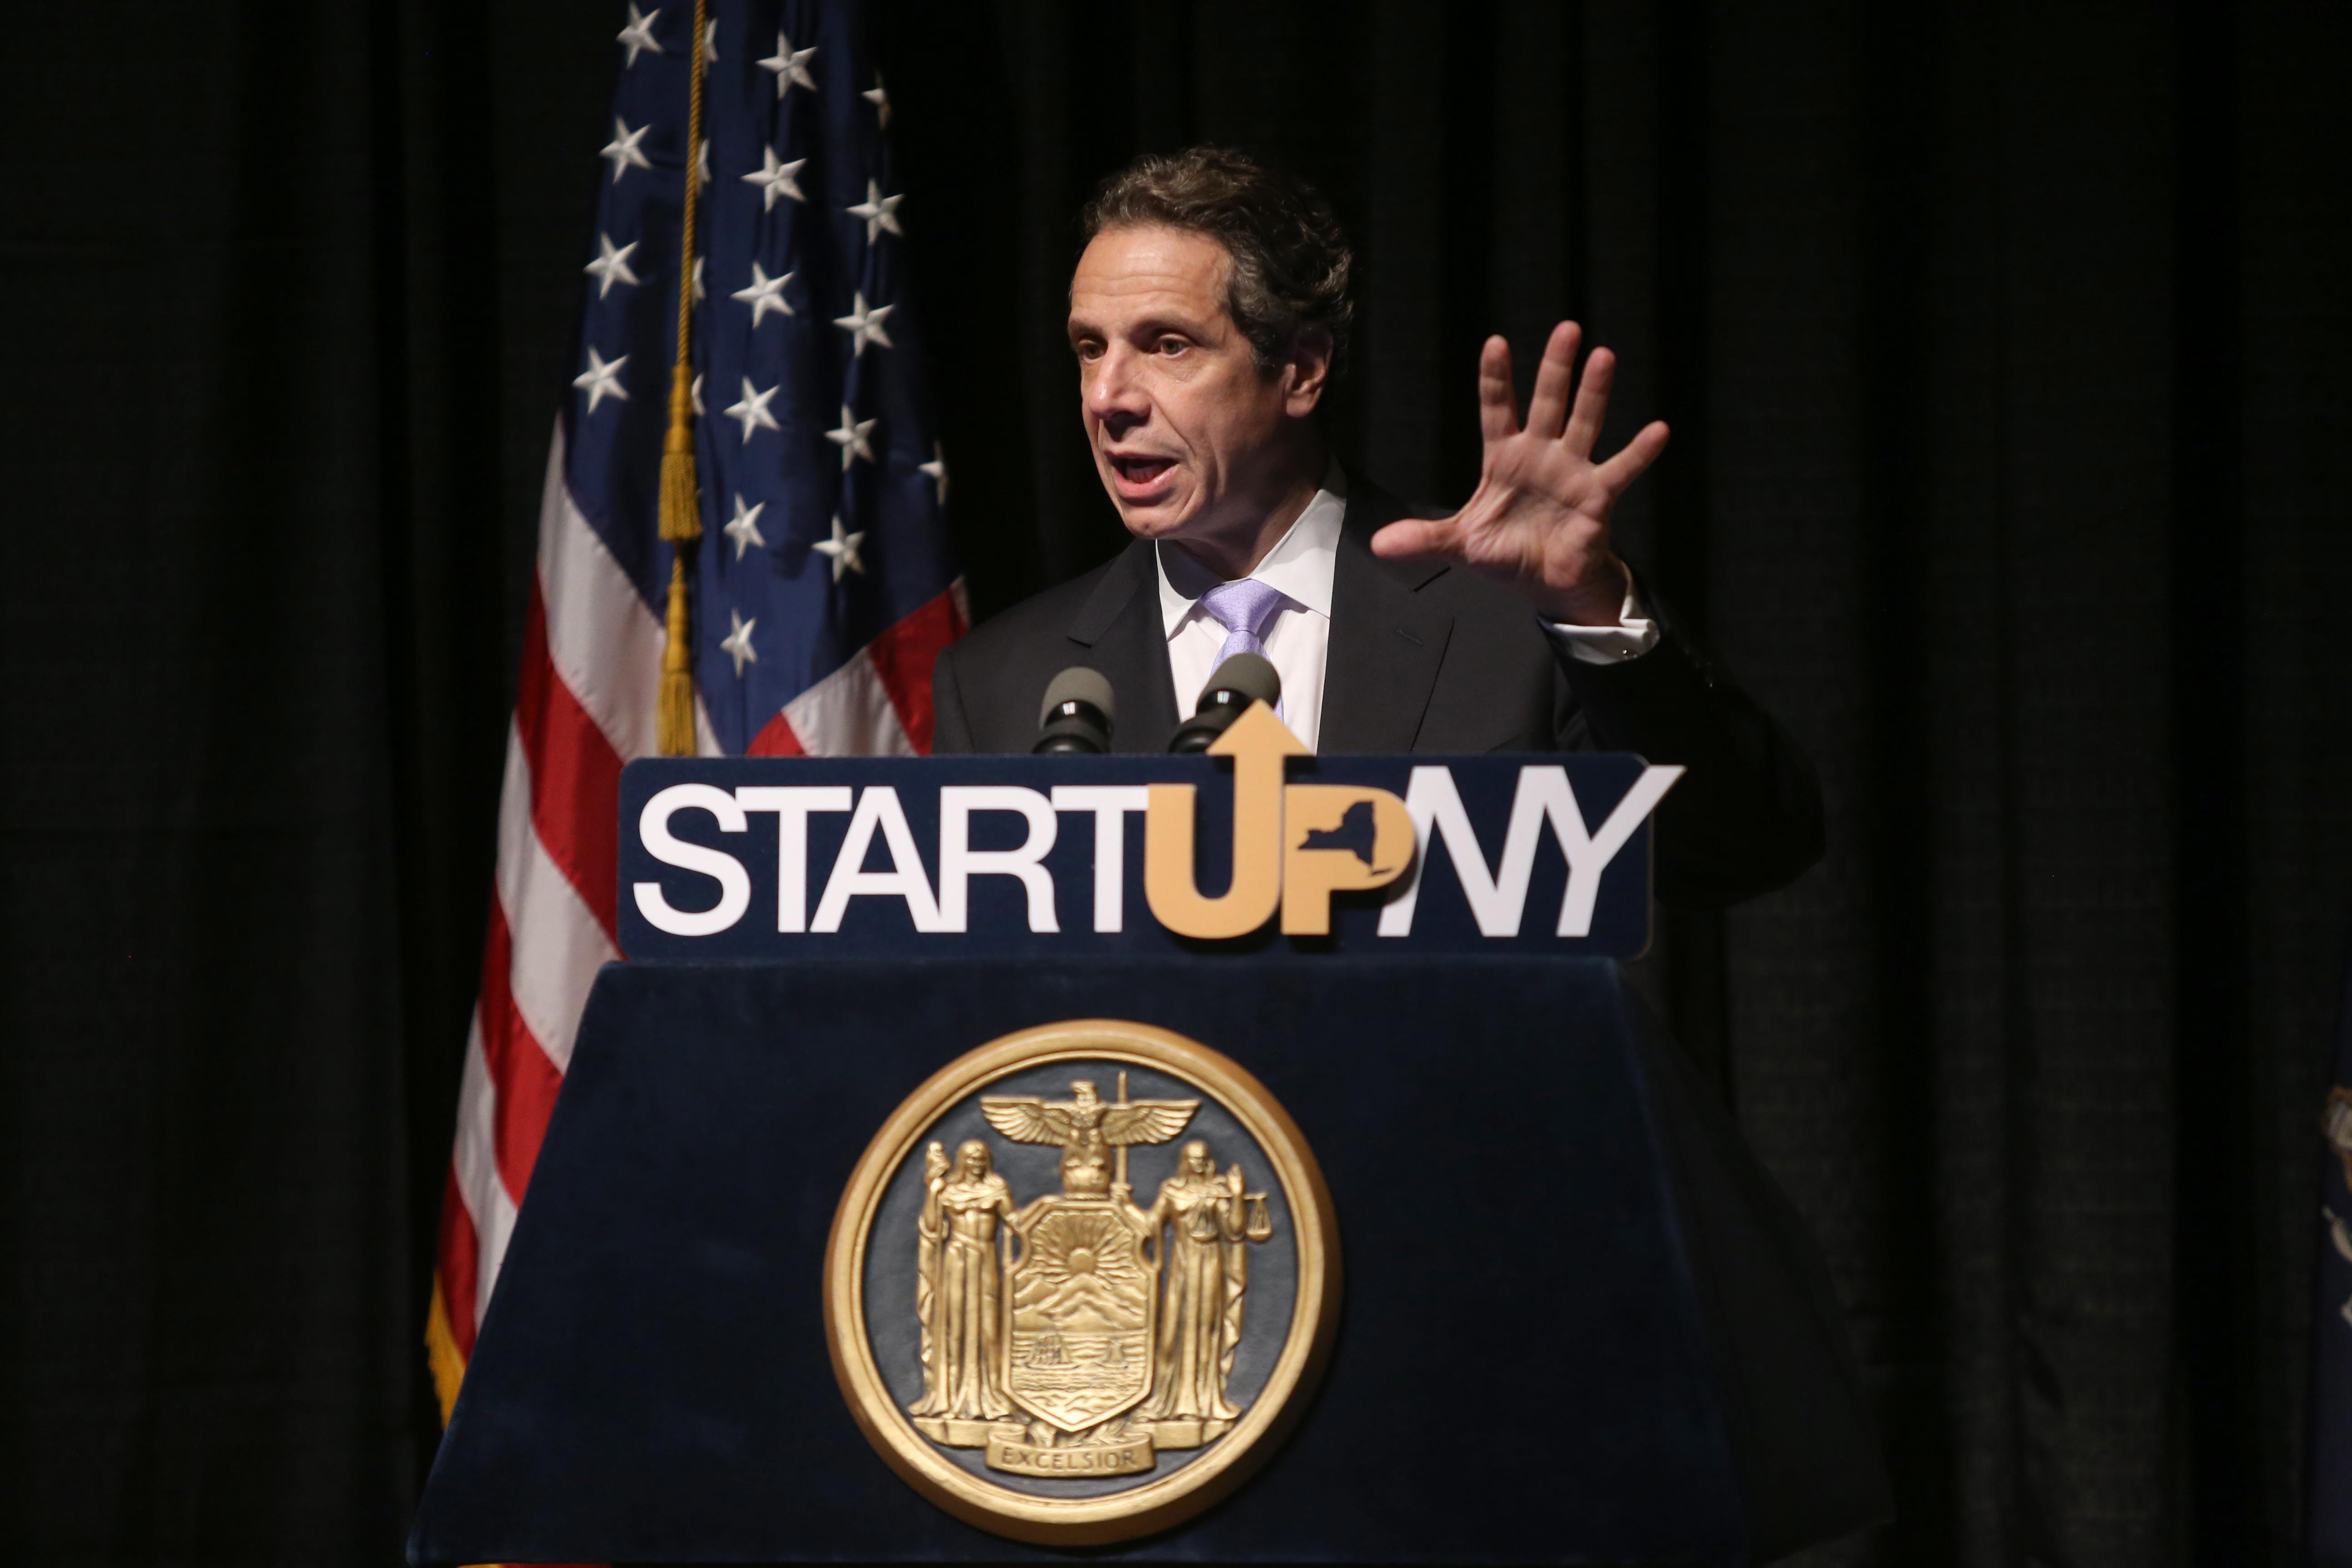 New York State Governor Andrew Cuomo talks about the Start-Up NY economic development plan in 2013. (News file photo)